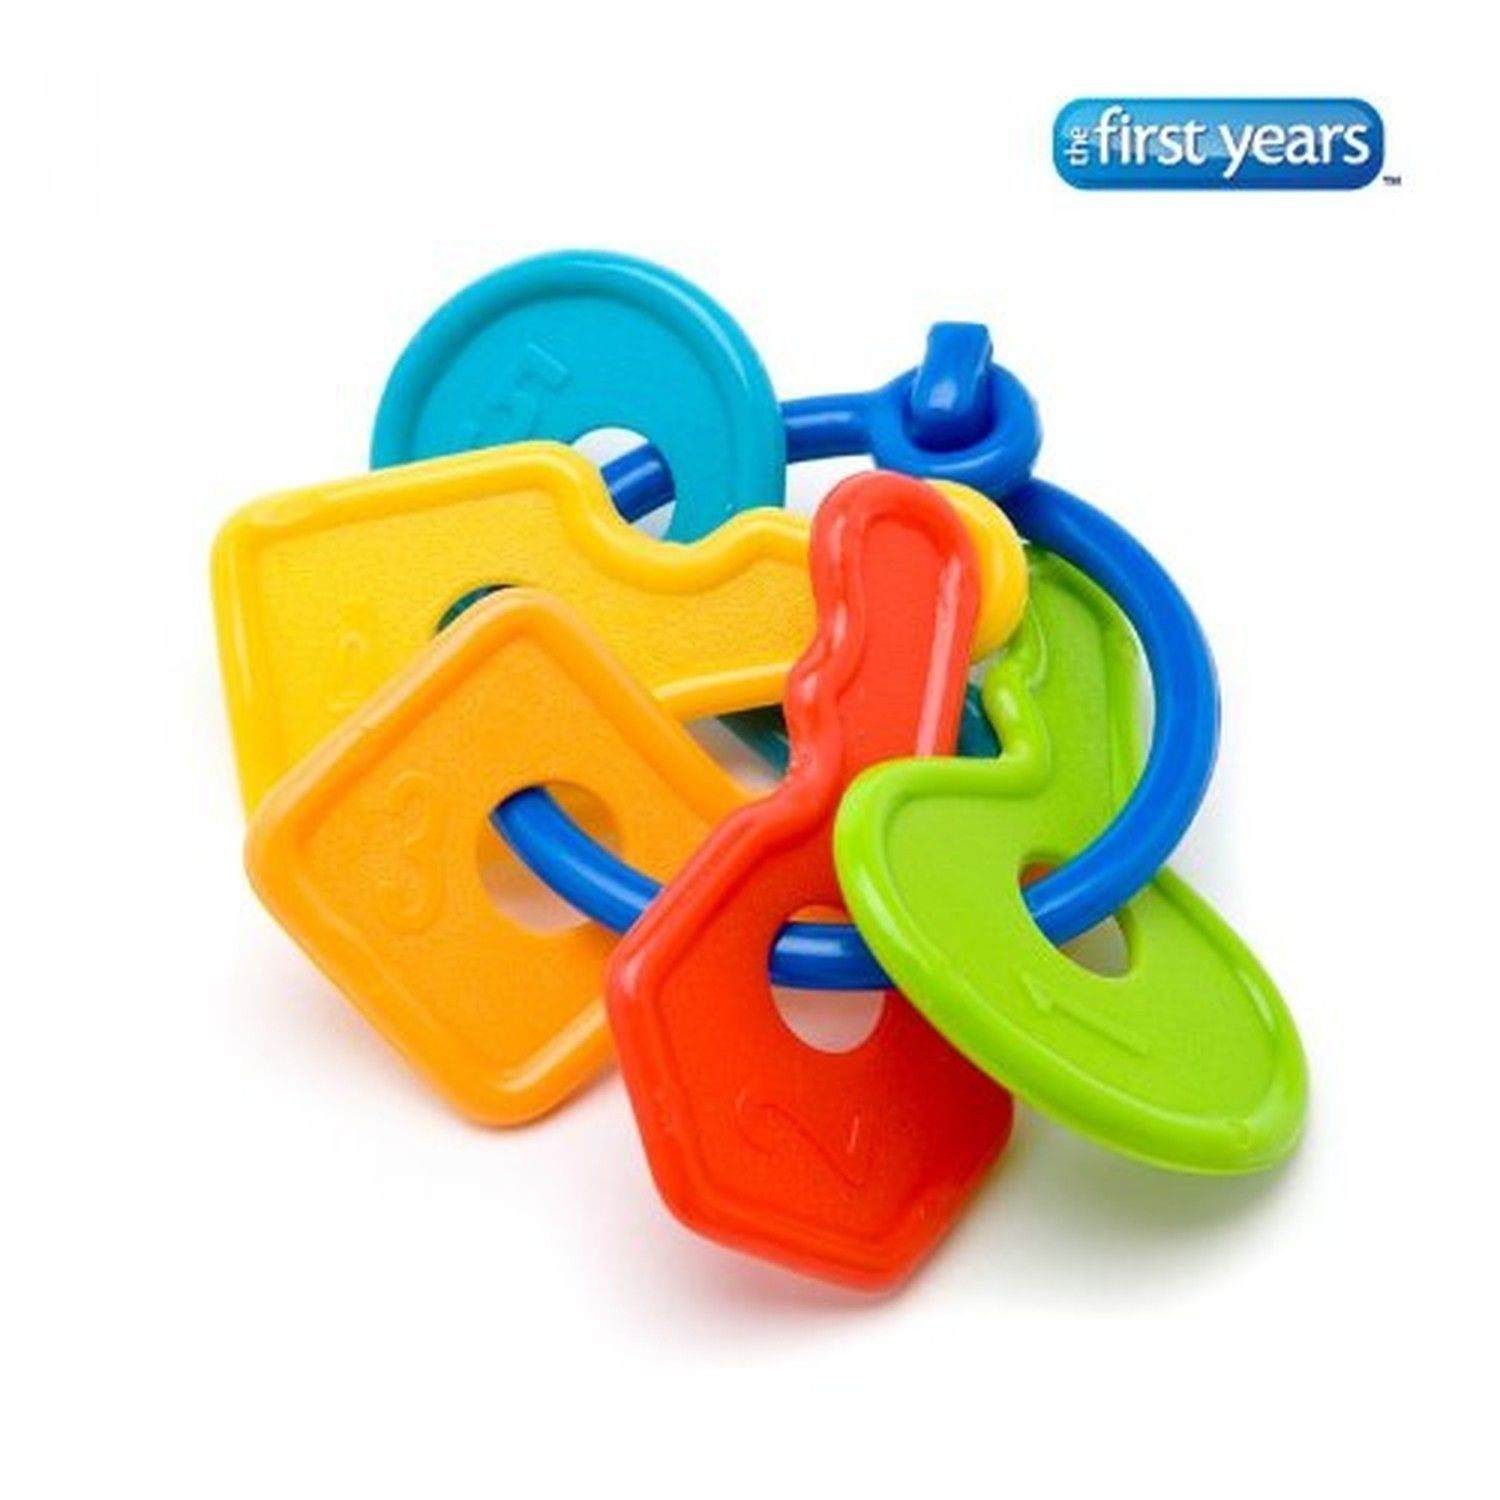 THE FIRST YEARS Larning Curve First Keys Teether 1 Set